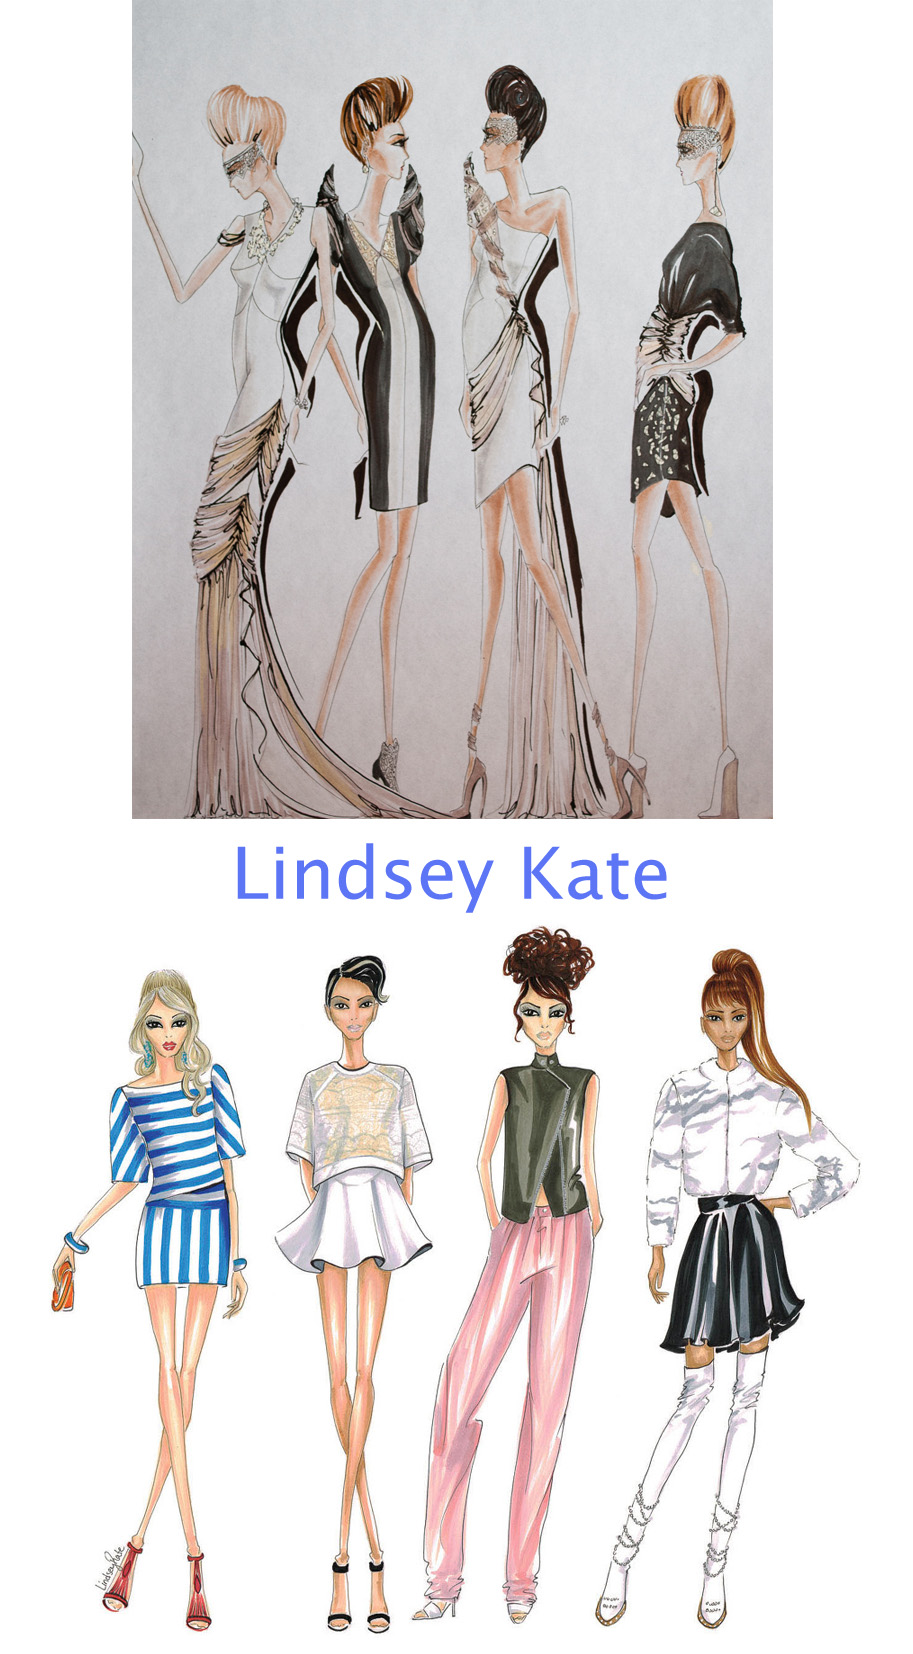 lindsey kate illustrations - madeofjewelry